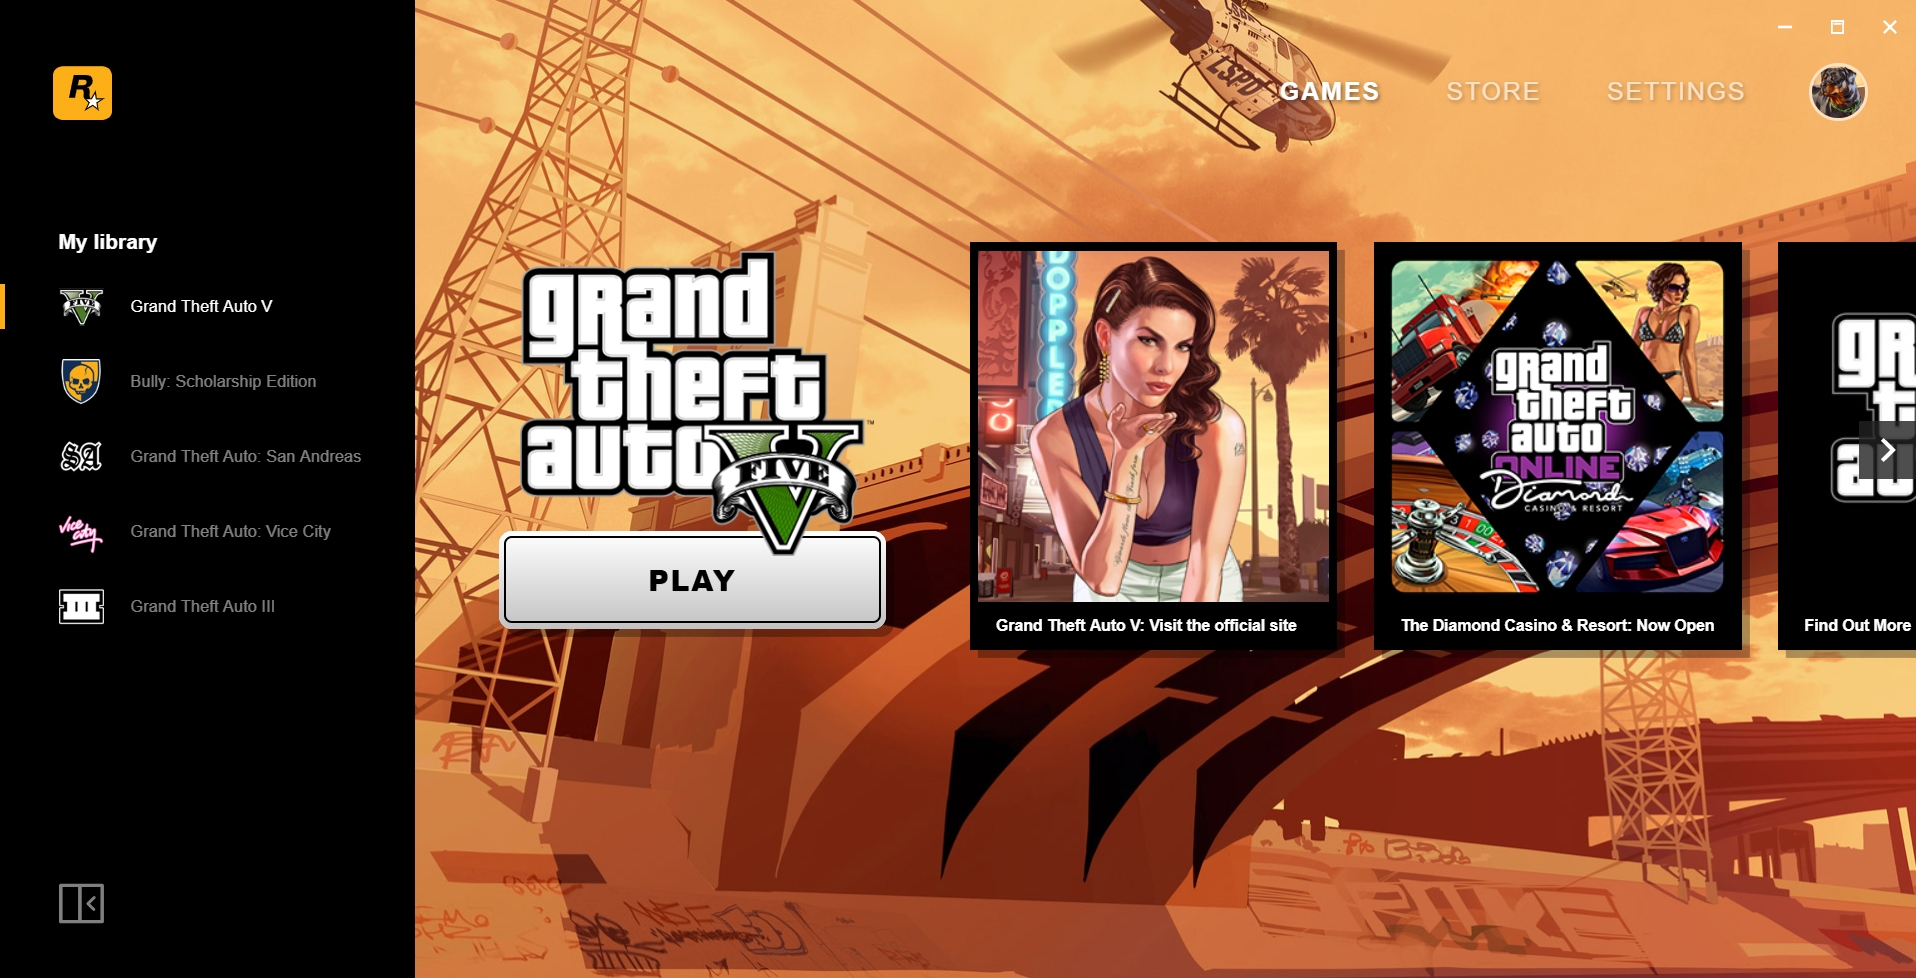 san andreas, OG gamers, Rockstar Games is giving away 'GTA: San Andreas' for free